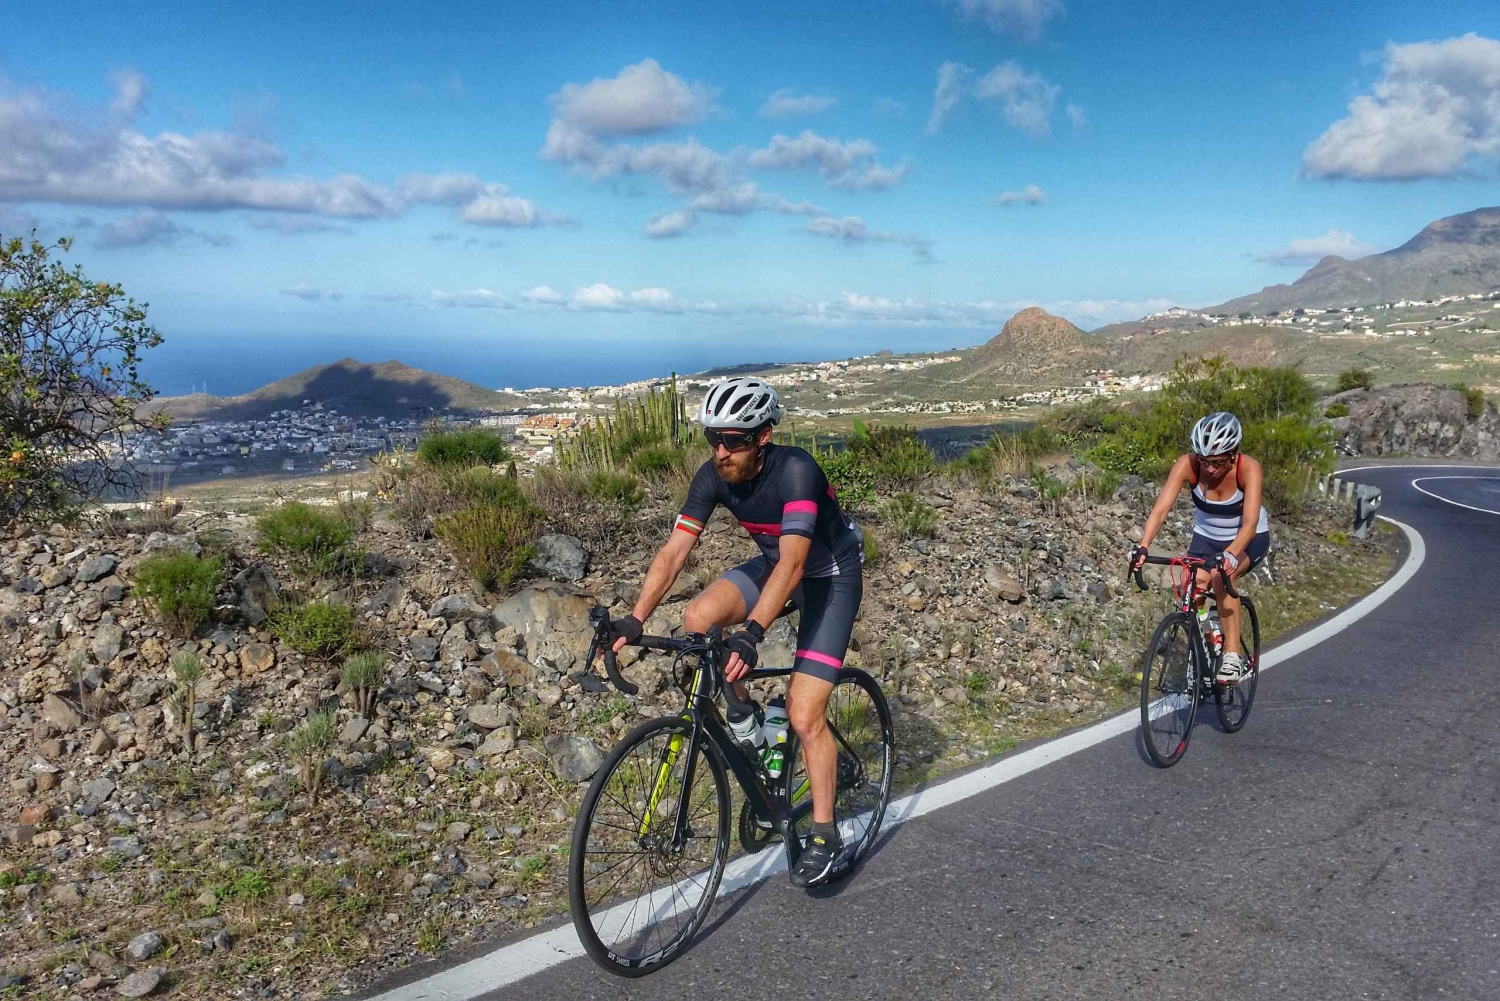 Vilaflor: Full–Day Road Cycling Route on Tuesdays